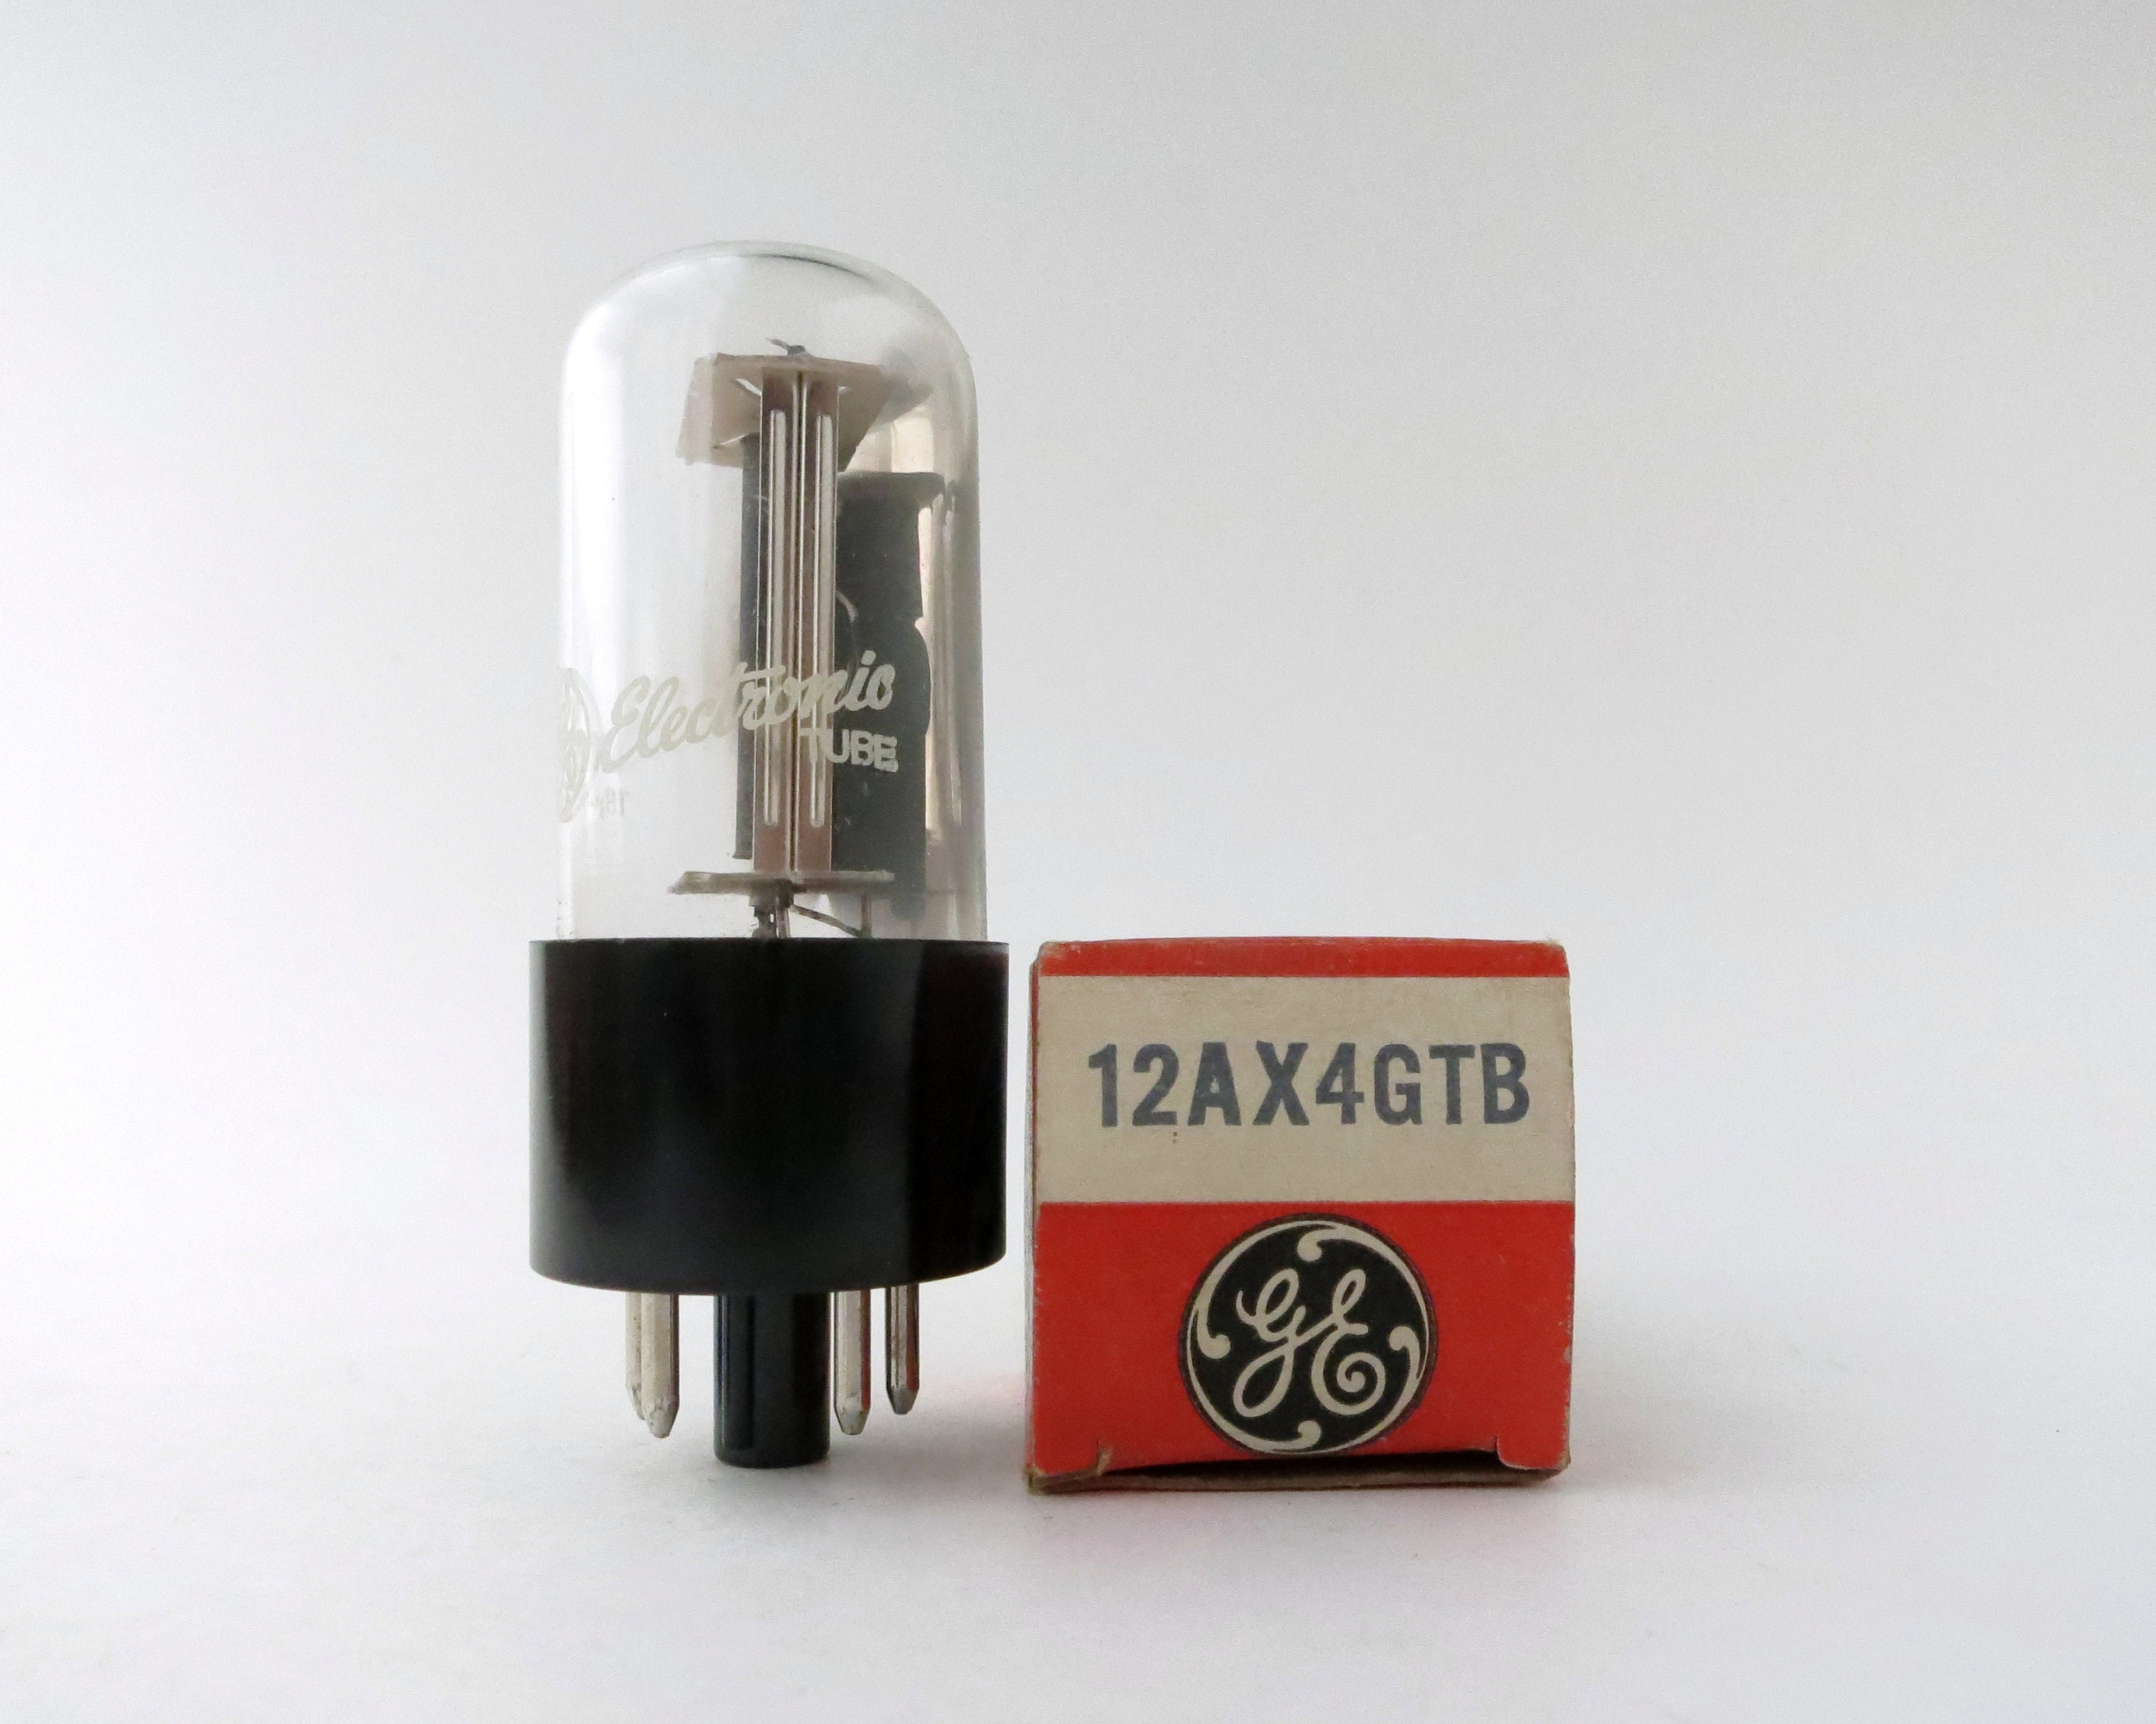 Ge 12ax4gtb Vacuum Tube New Old Stock Original Boxes Etsy Diodes Zoom